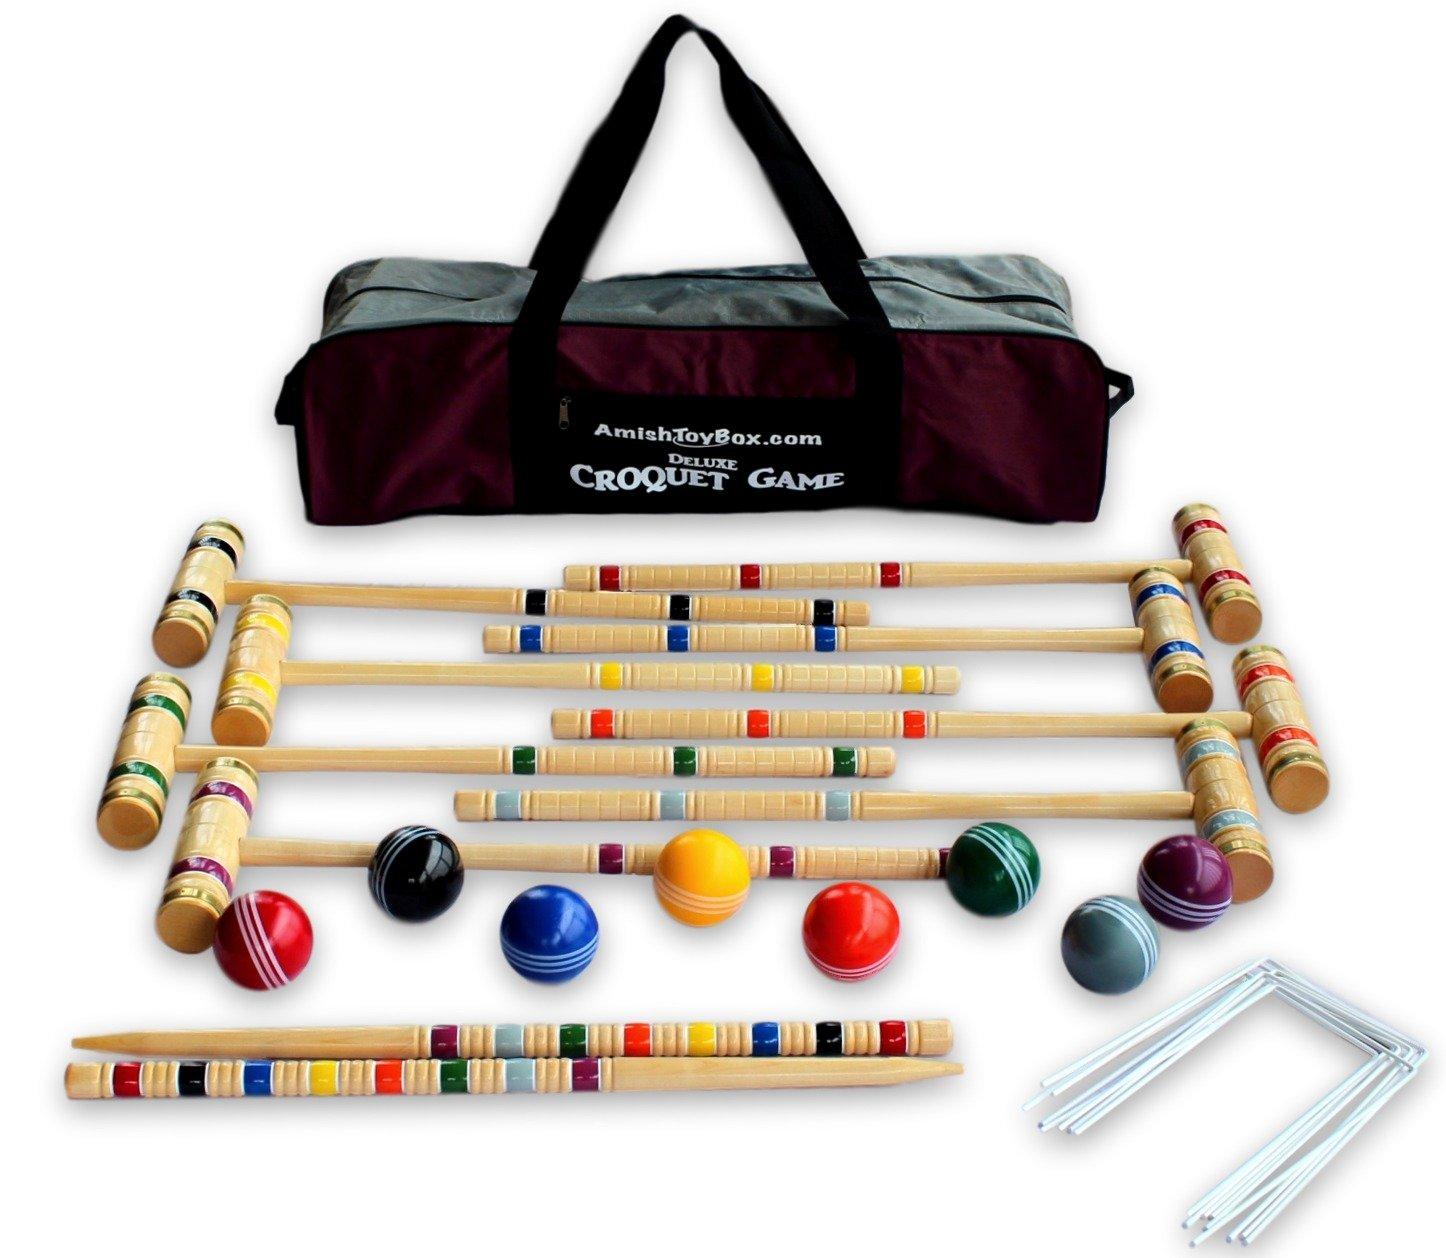 8-Player Deluxe Amish Crafted Croquet Game Set with Carry Bag (29'' Mallet Length) by AmishToyBox.com